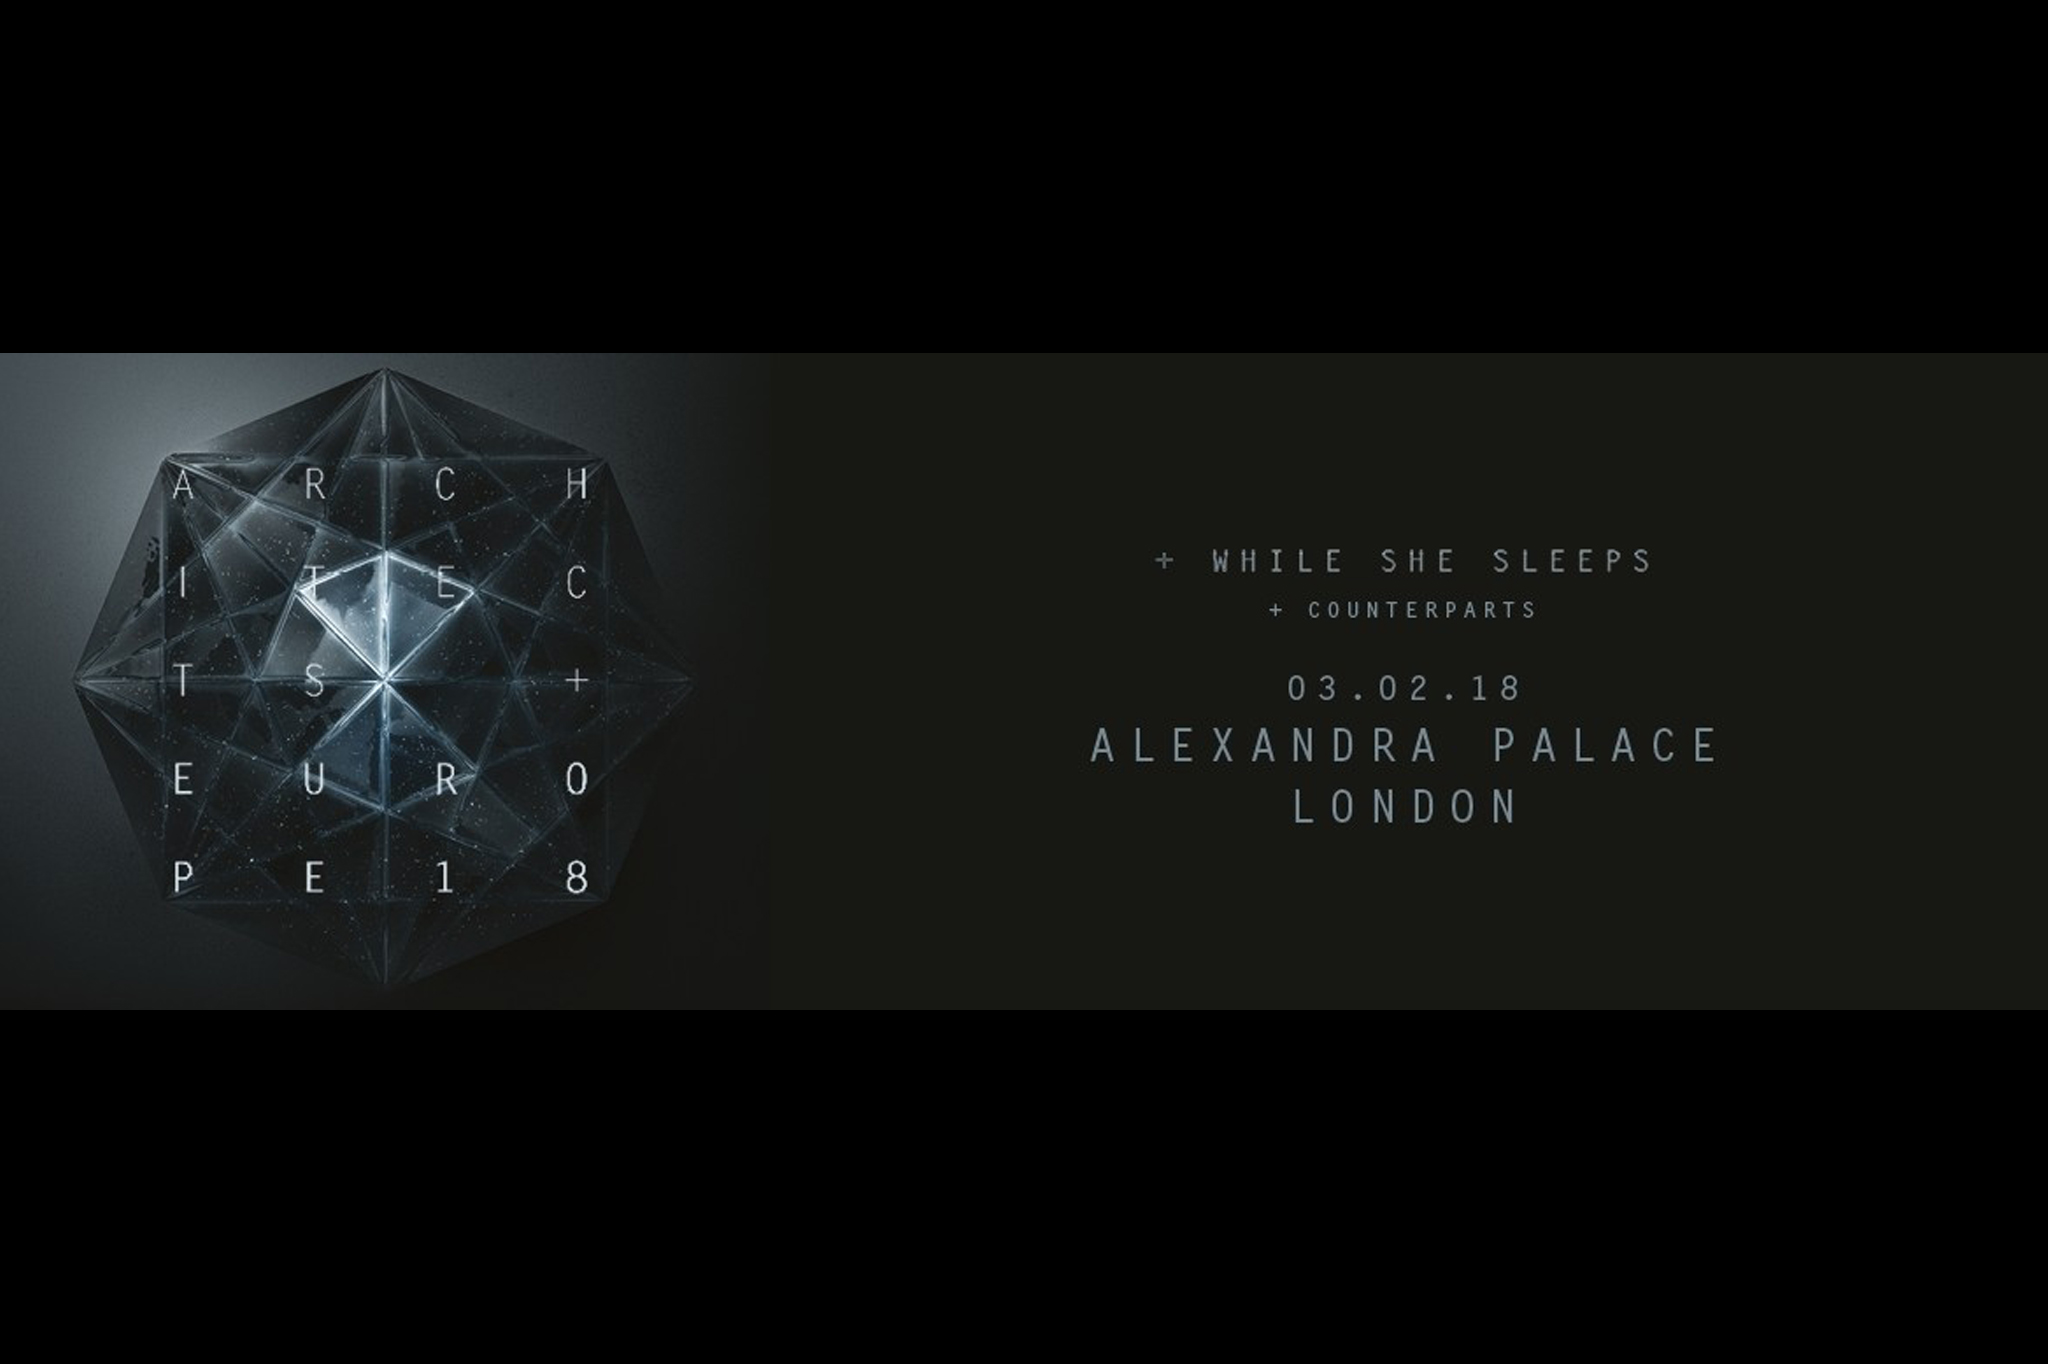 architects while she sleeps counterparts Alexandra palace London 2018 sold out